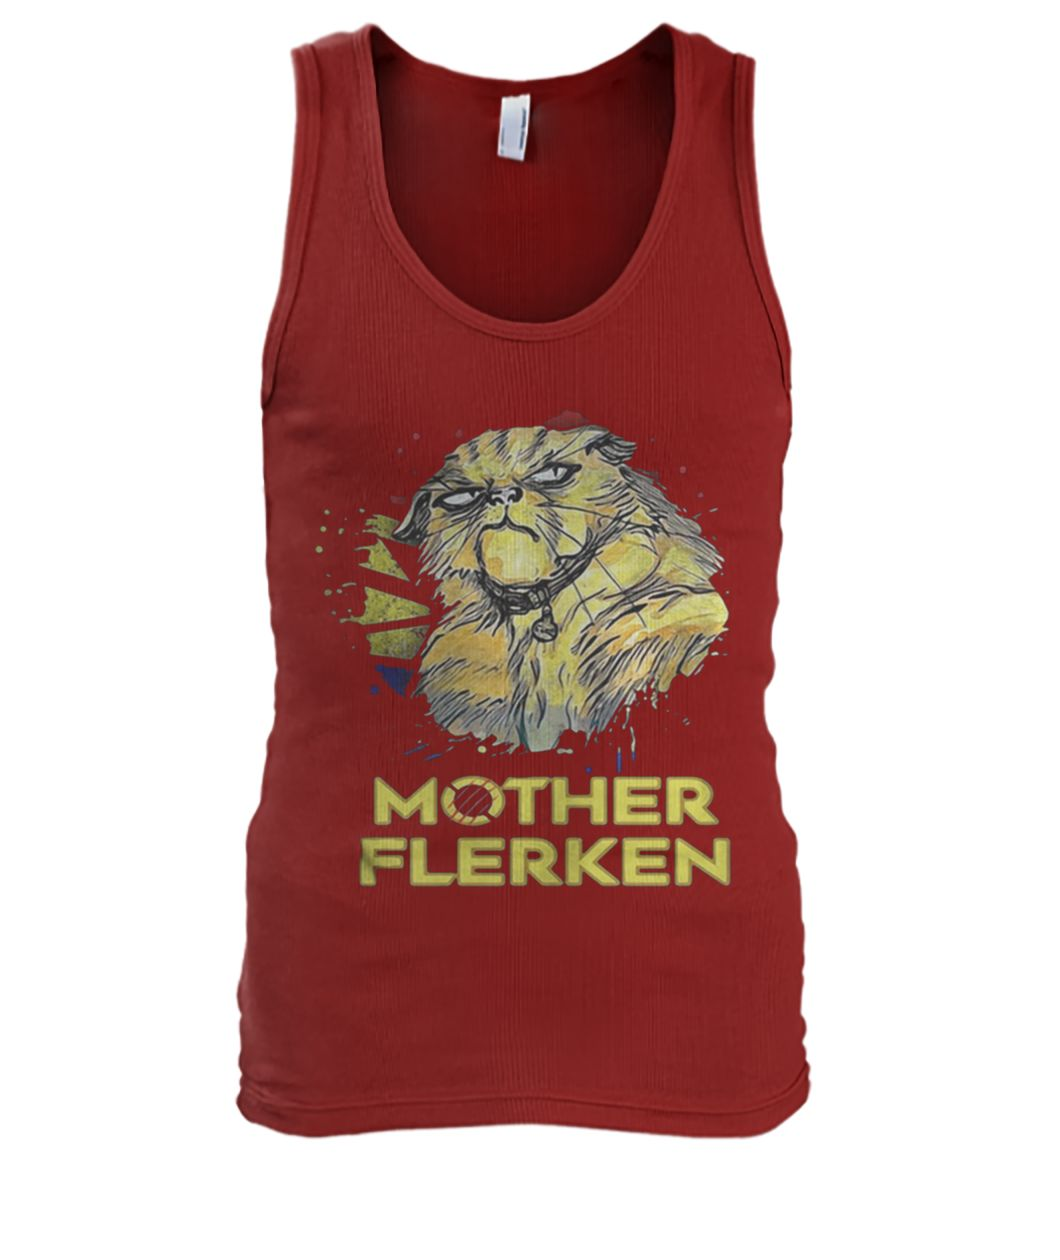 Captain marvel goose cat mother flerken men's tank top